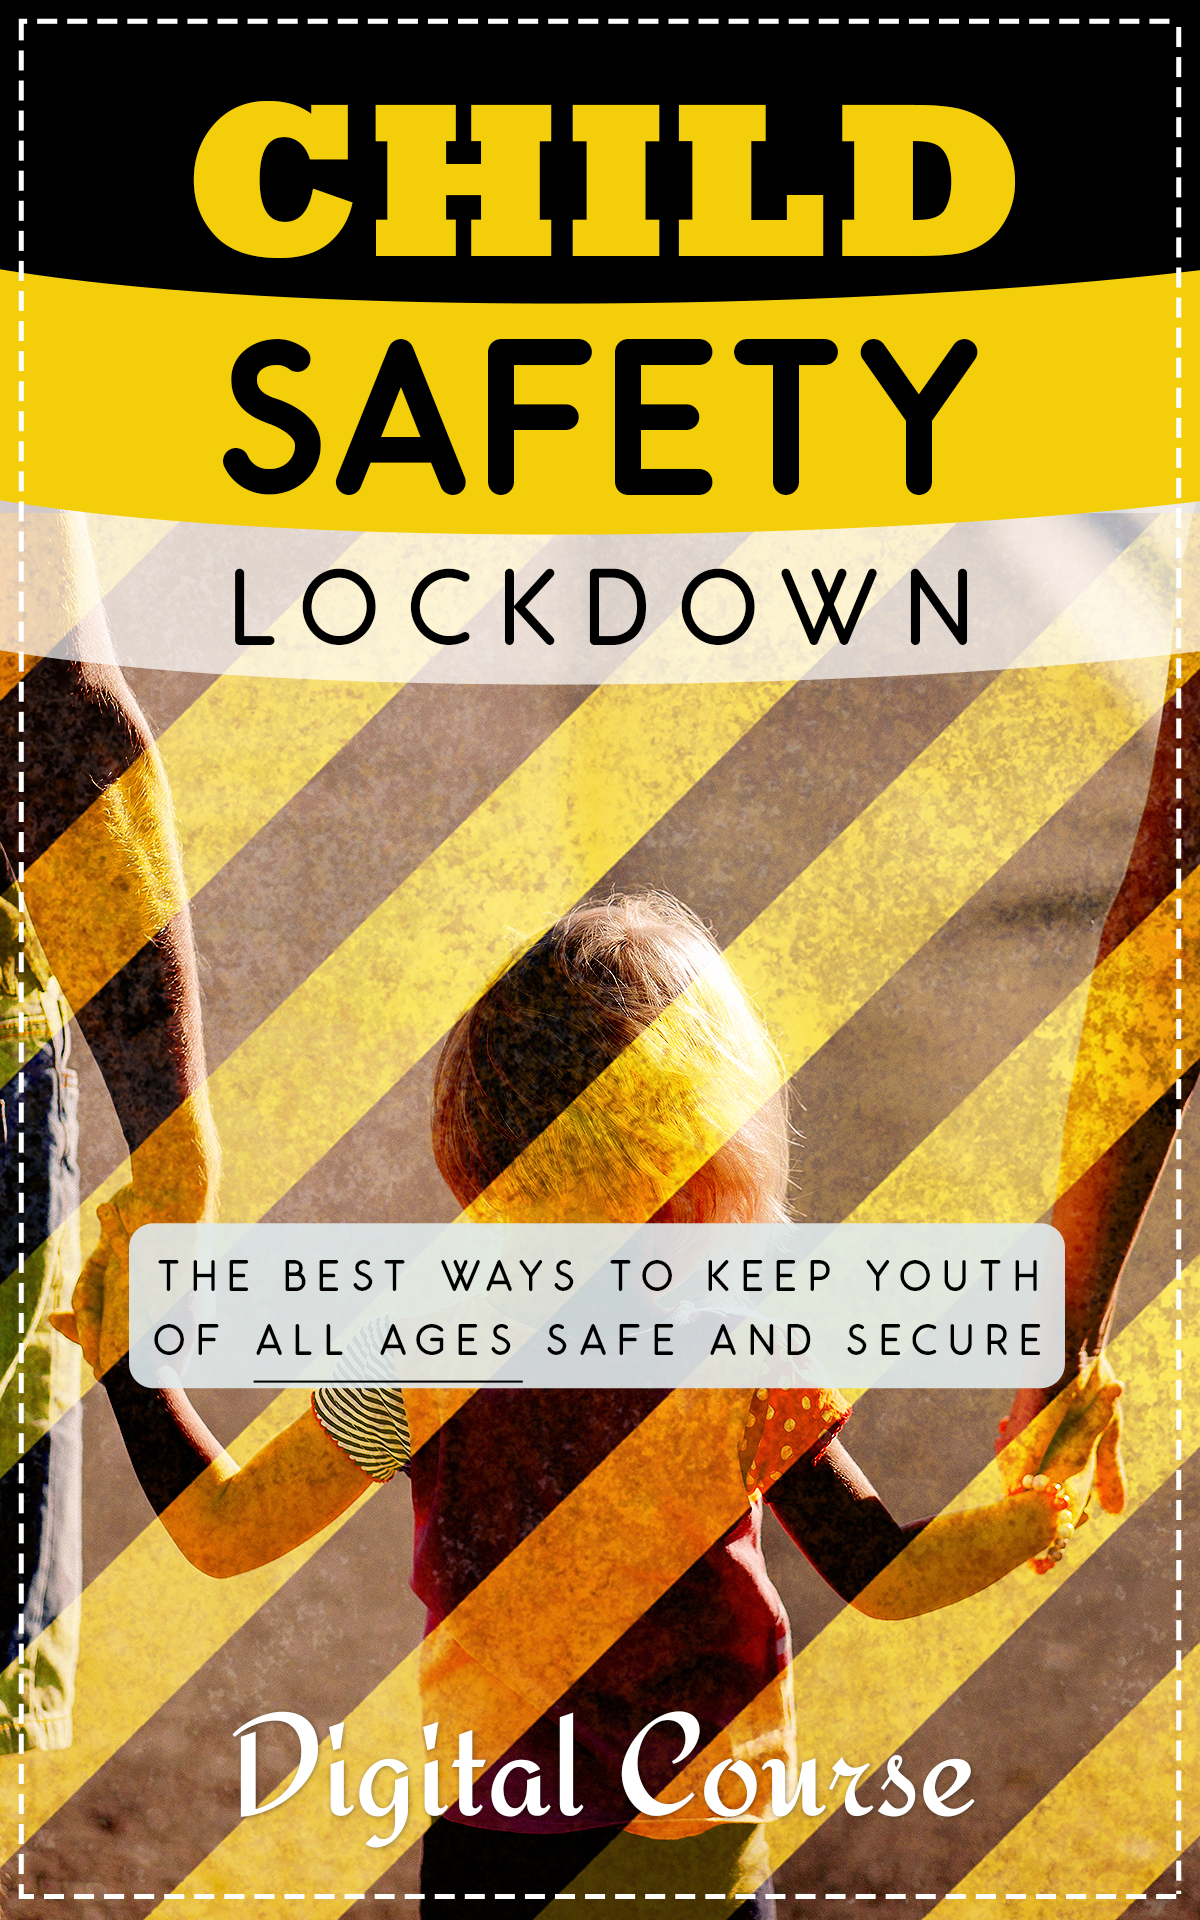 Child Safety Lockdown (The Best Ways To Keep Youth Of All Ages Safe And Secure) Ebook's Book Image